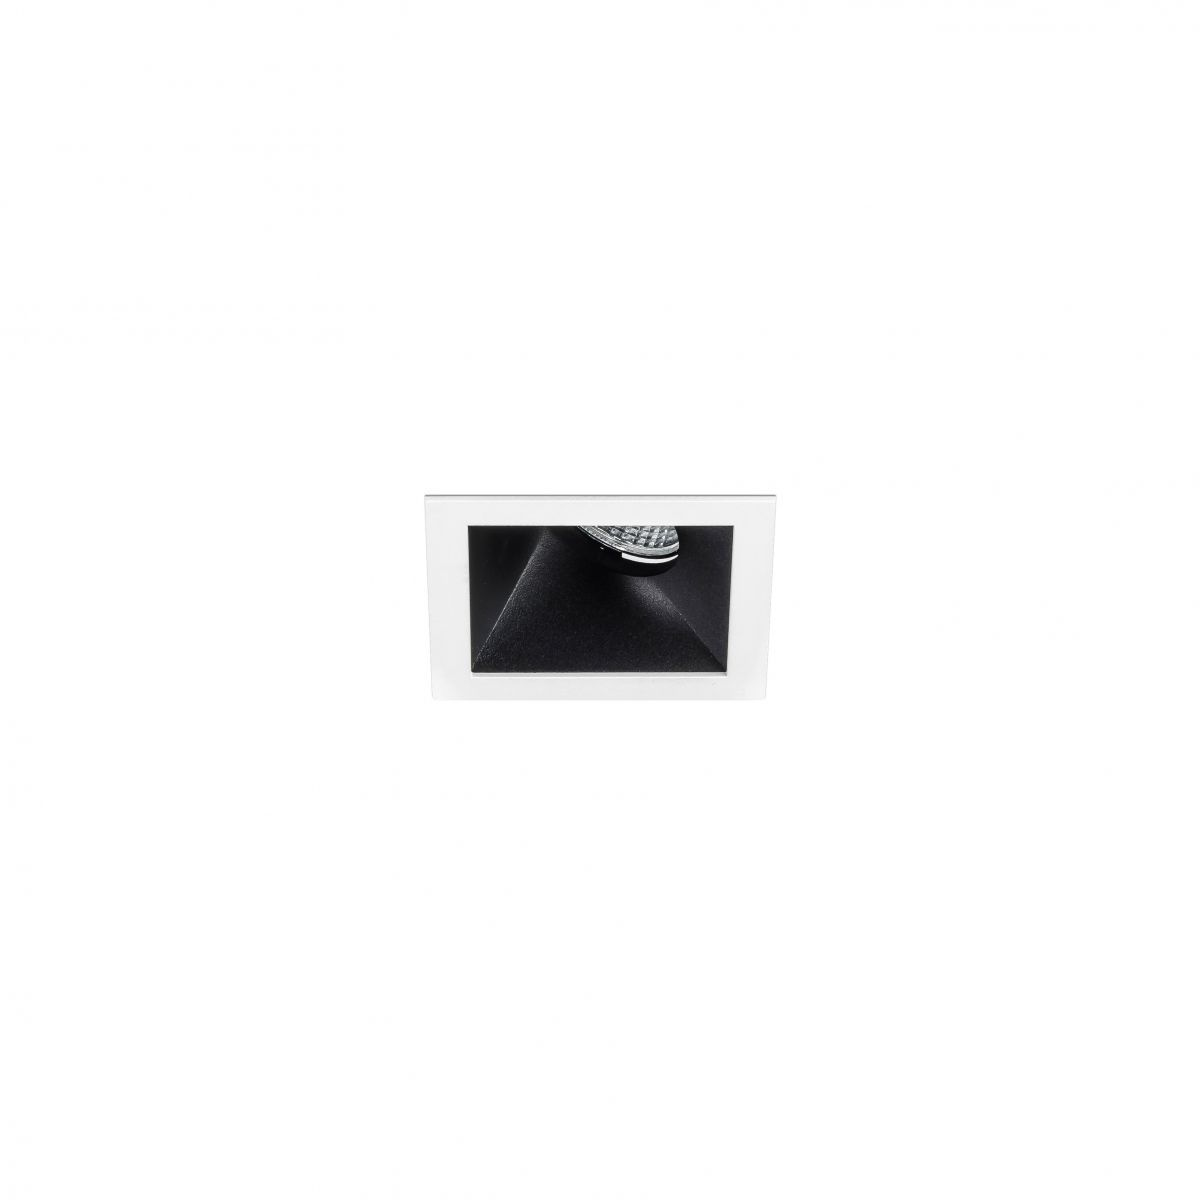 van gogh downlight square wallw 85mm 4000k 767lm 141w ugr 151 black dali